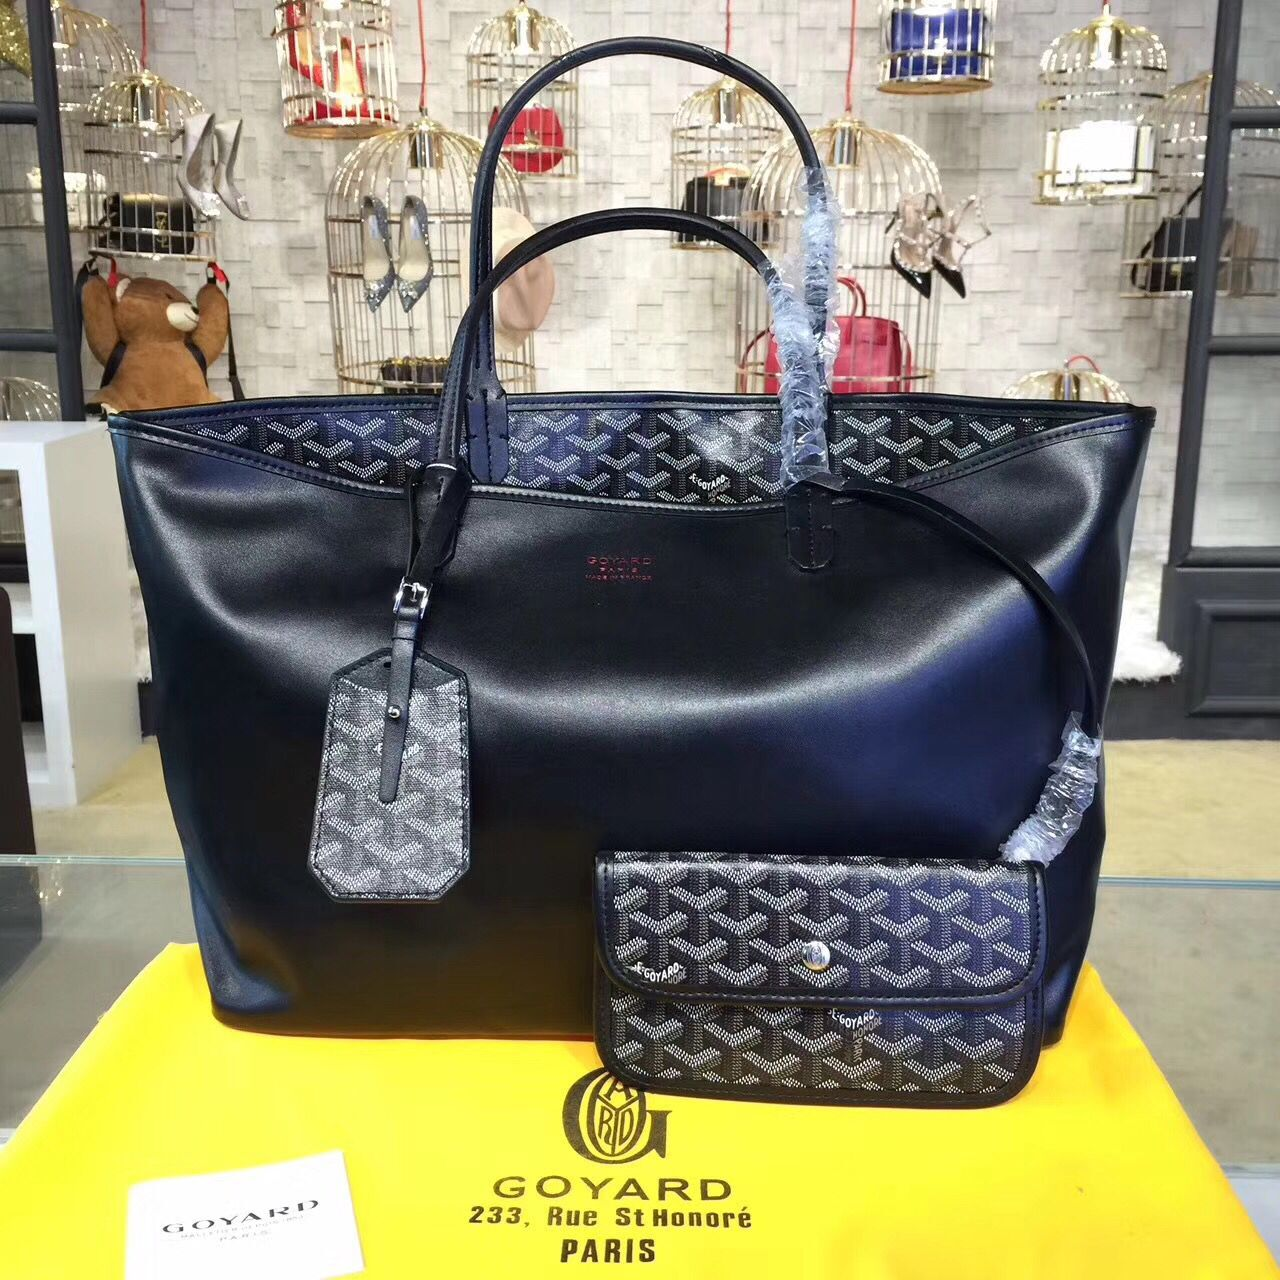 Goyard Y Doodling Calfskin Leather Tote Bag 7901 Black